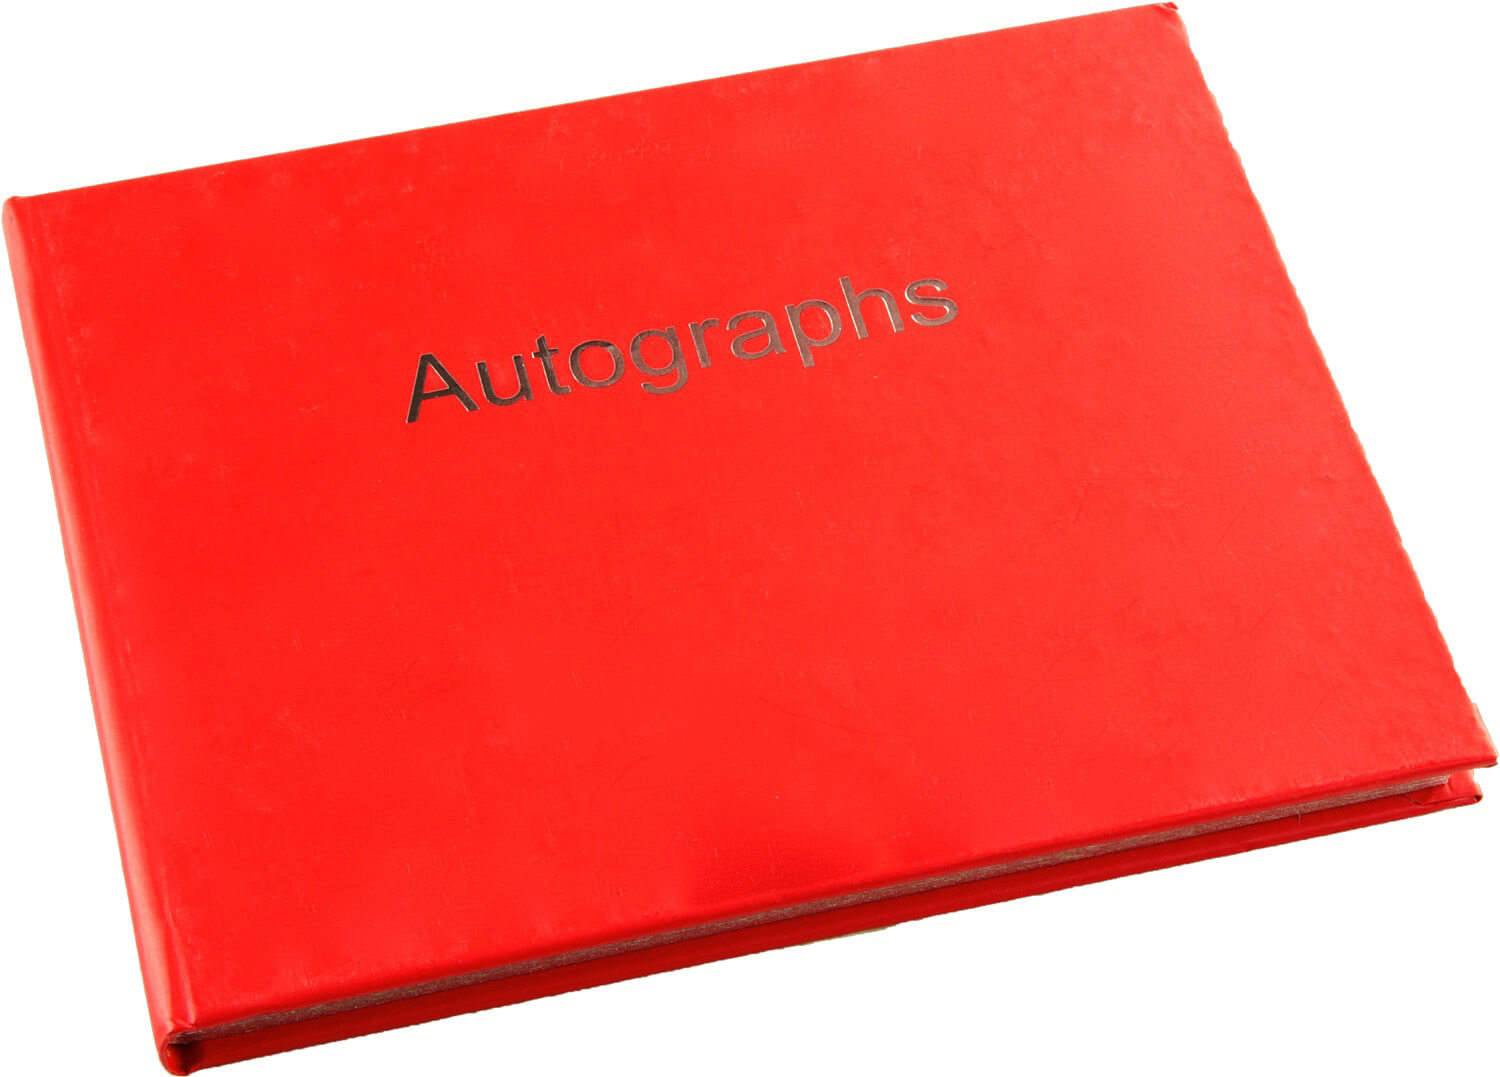 Esposti Autograph Book - Hardback Cover - Silver Edged Pages - Red - Size 130 x 110mm